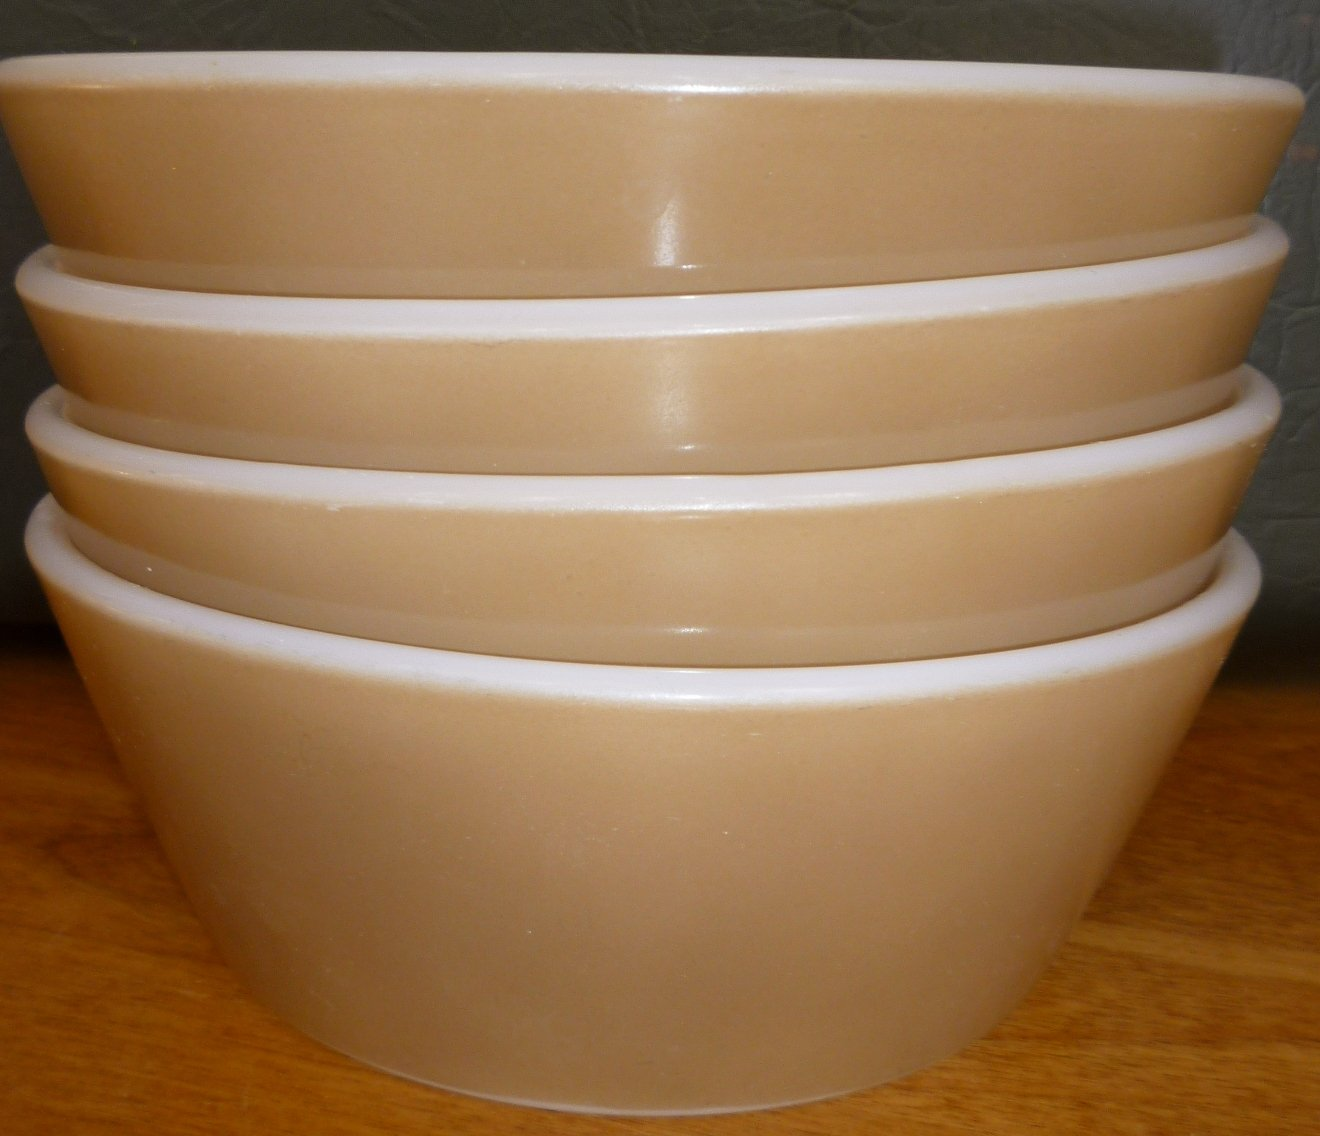 VINTAGE ANCHOR HOCKING FIRE-KING BROWN OVEN WARE BOWL SET OF 4